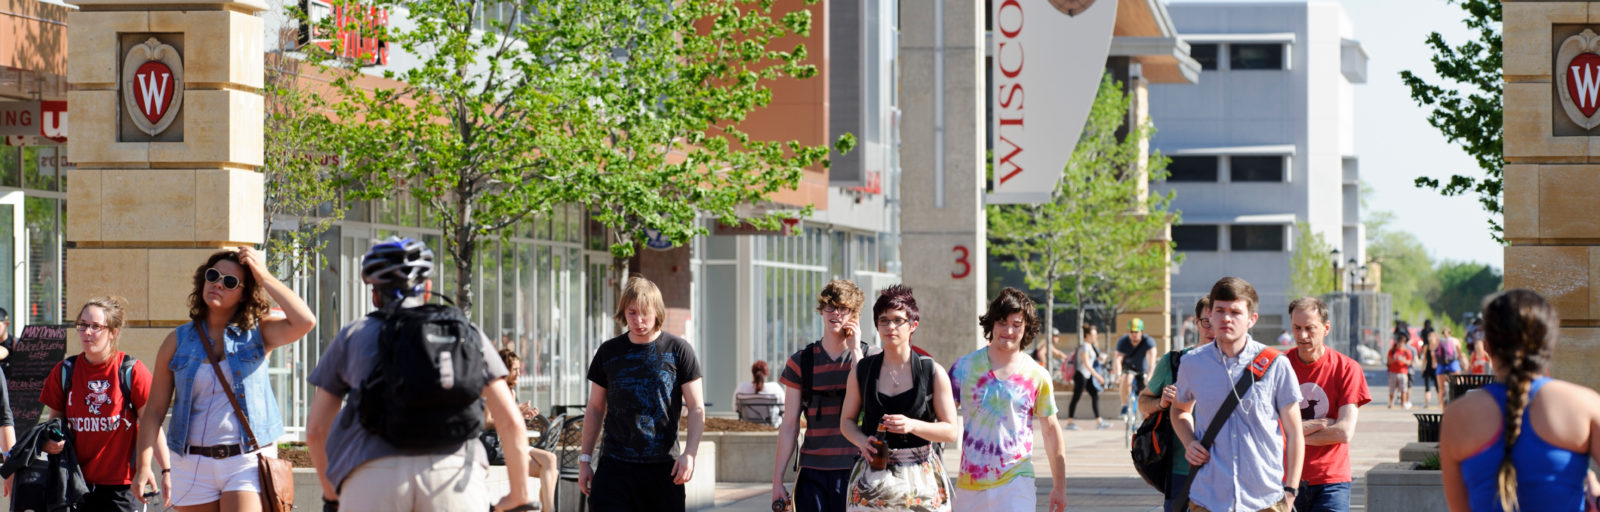 Twice as nice: UHS is #1 college health service two years running